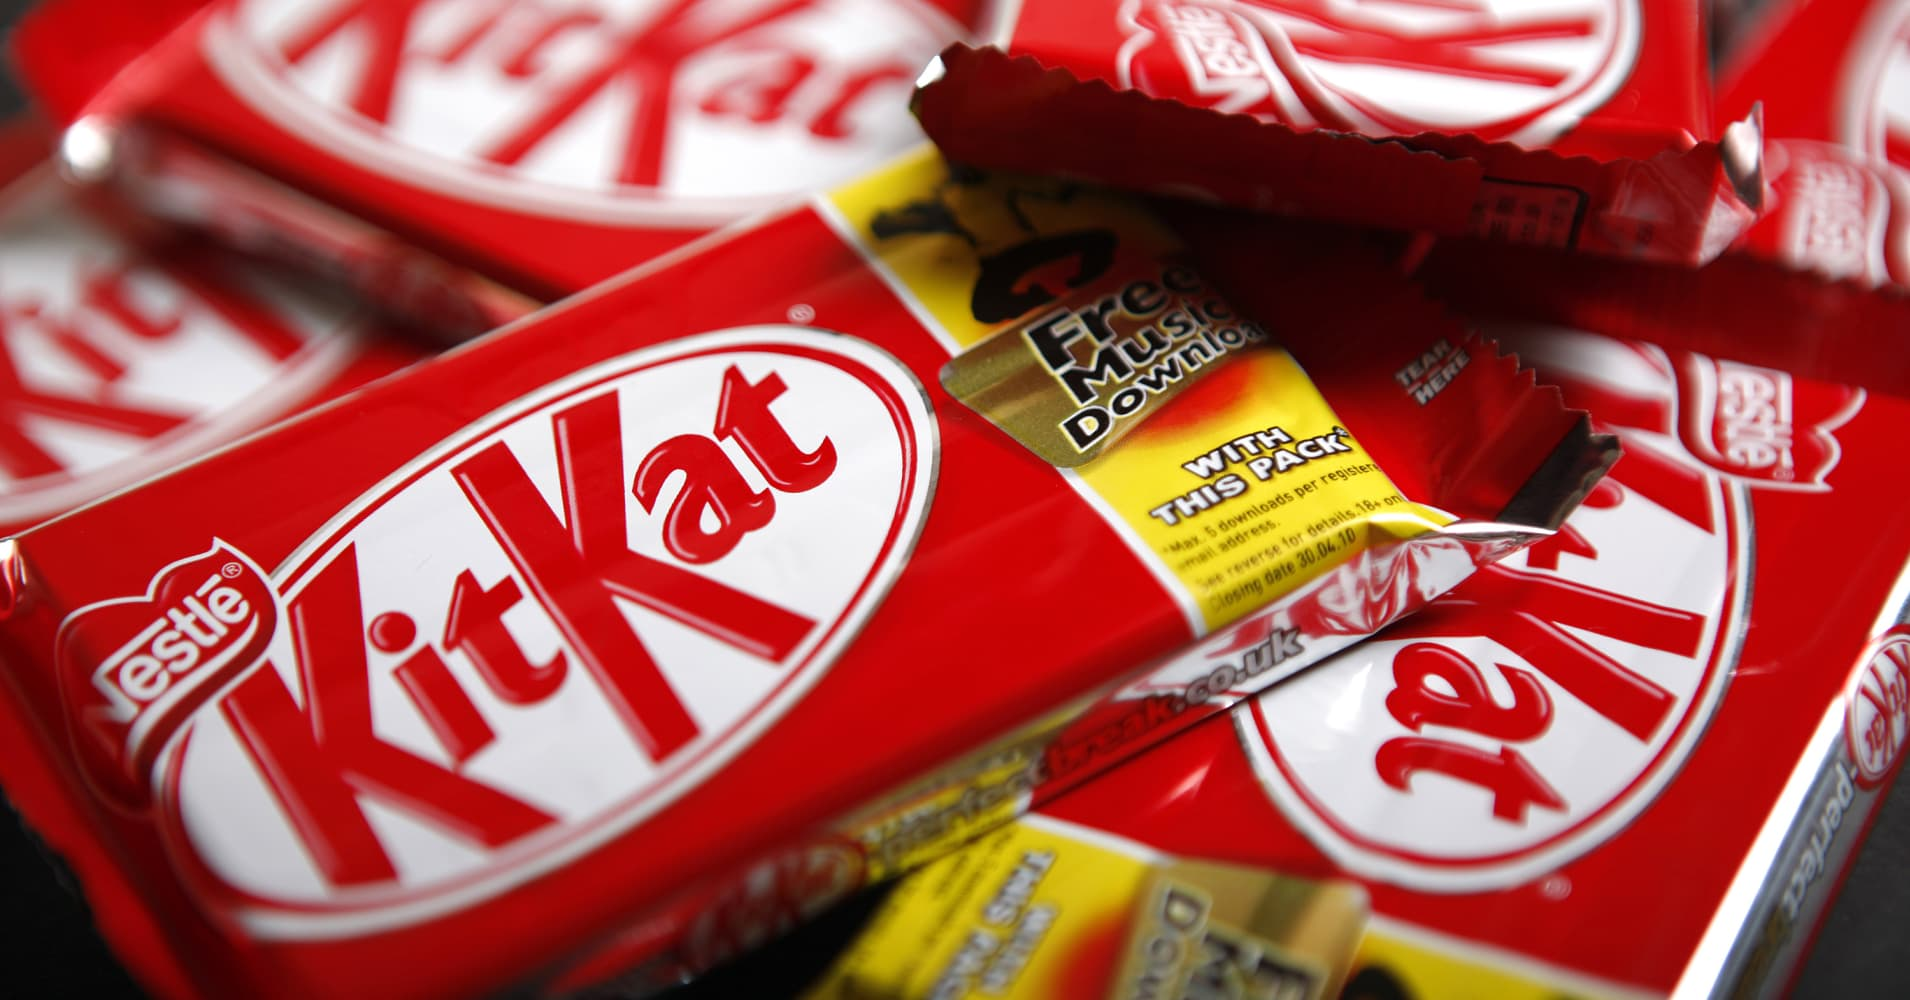 Nestlé shares hit record after Daniel Loeb's fund targets group